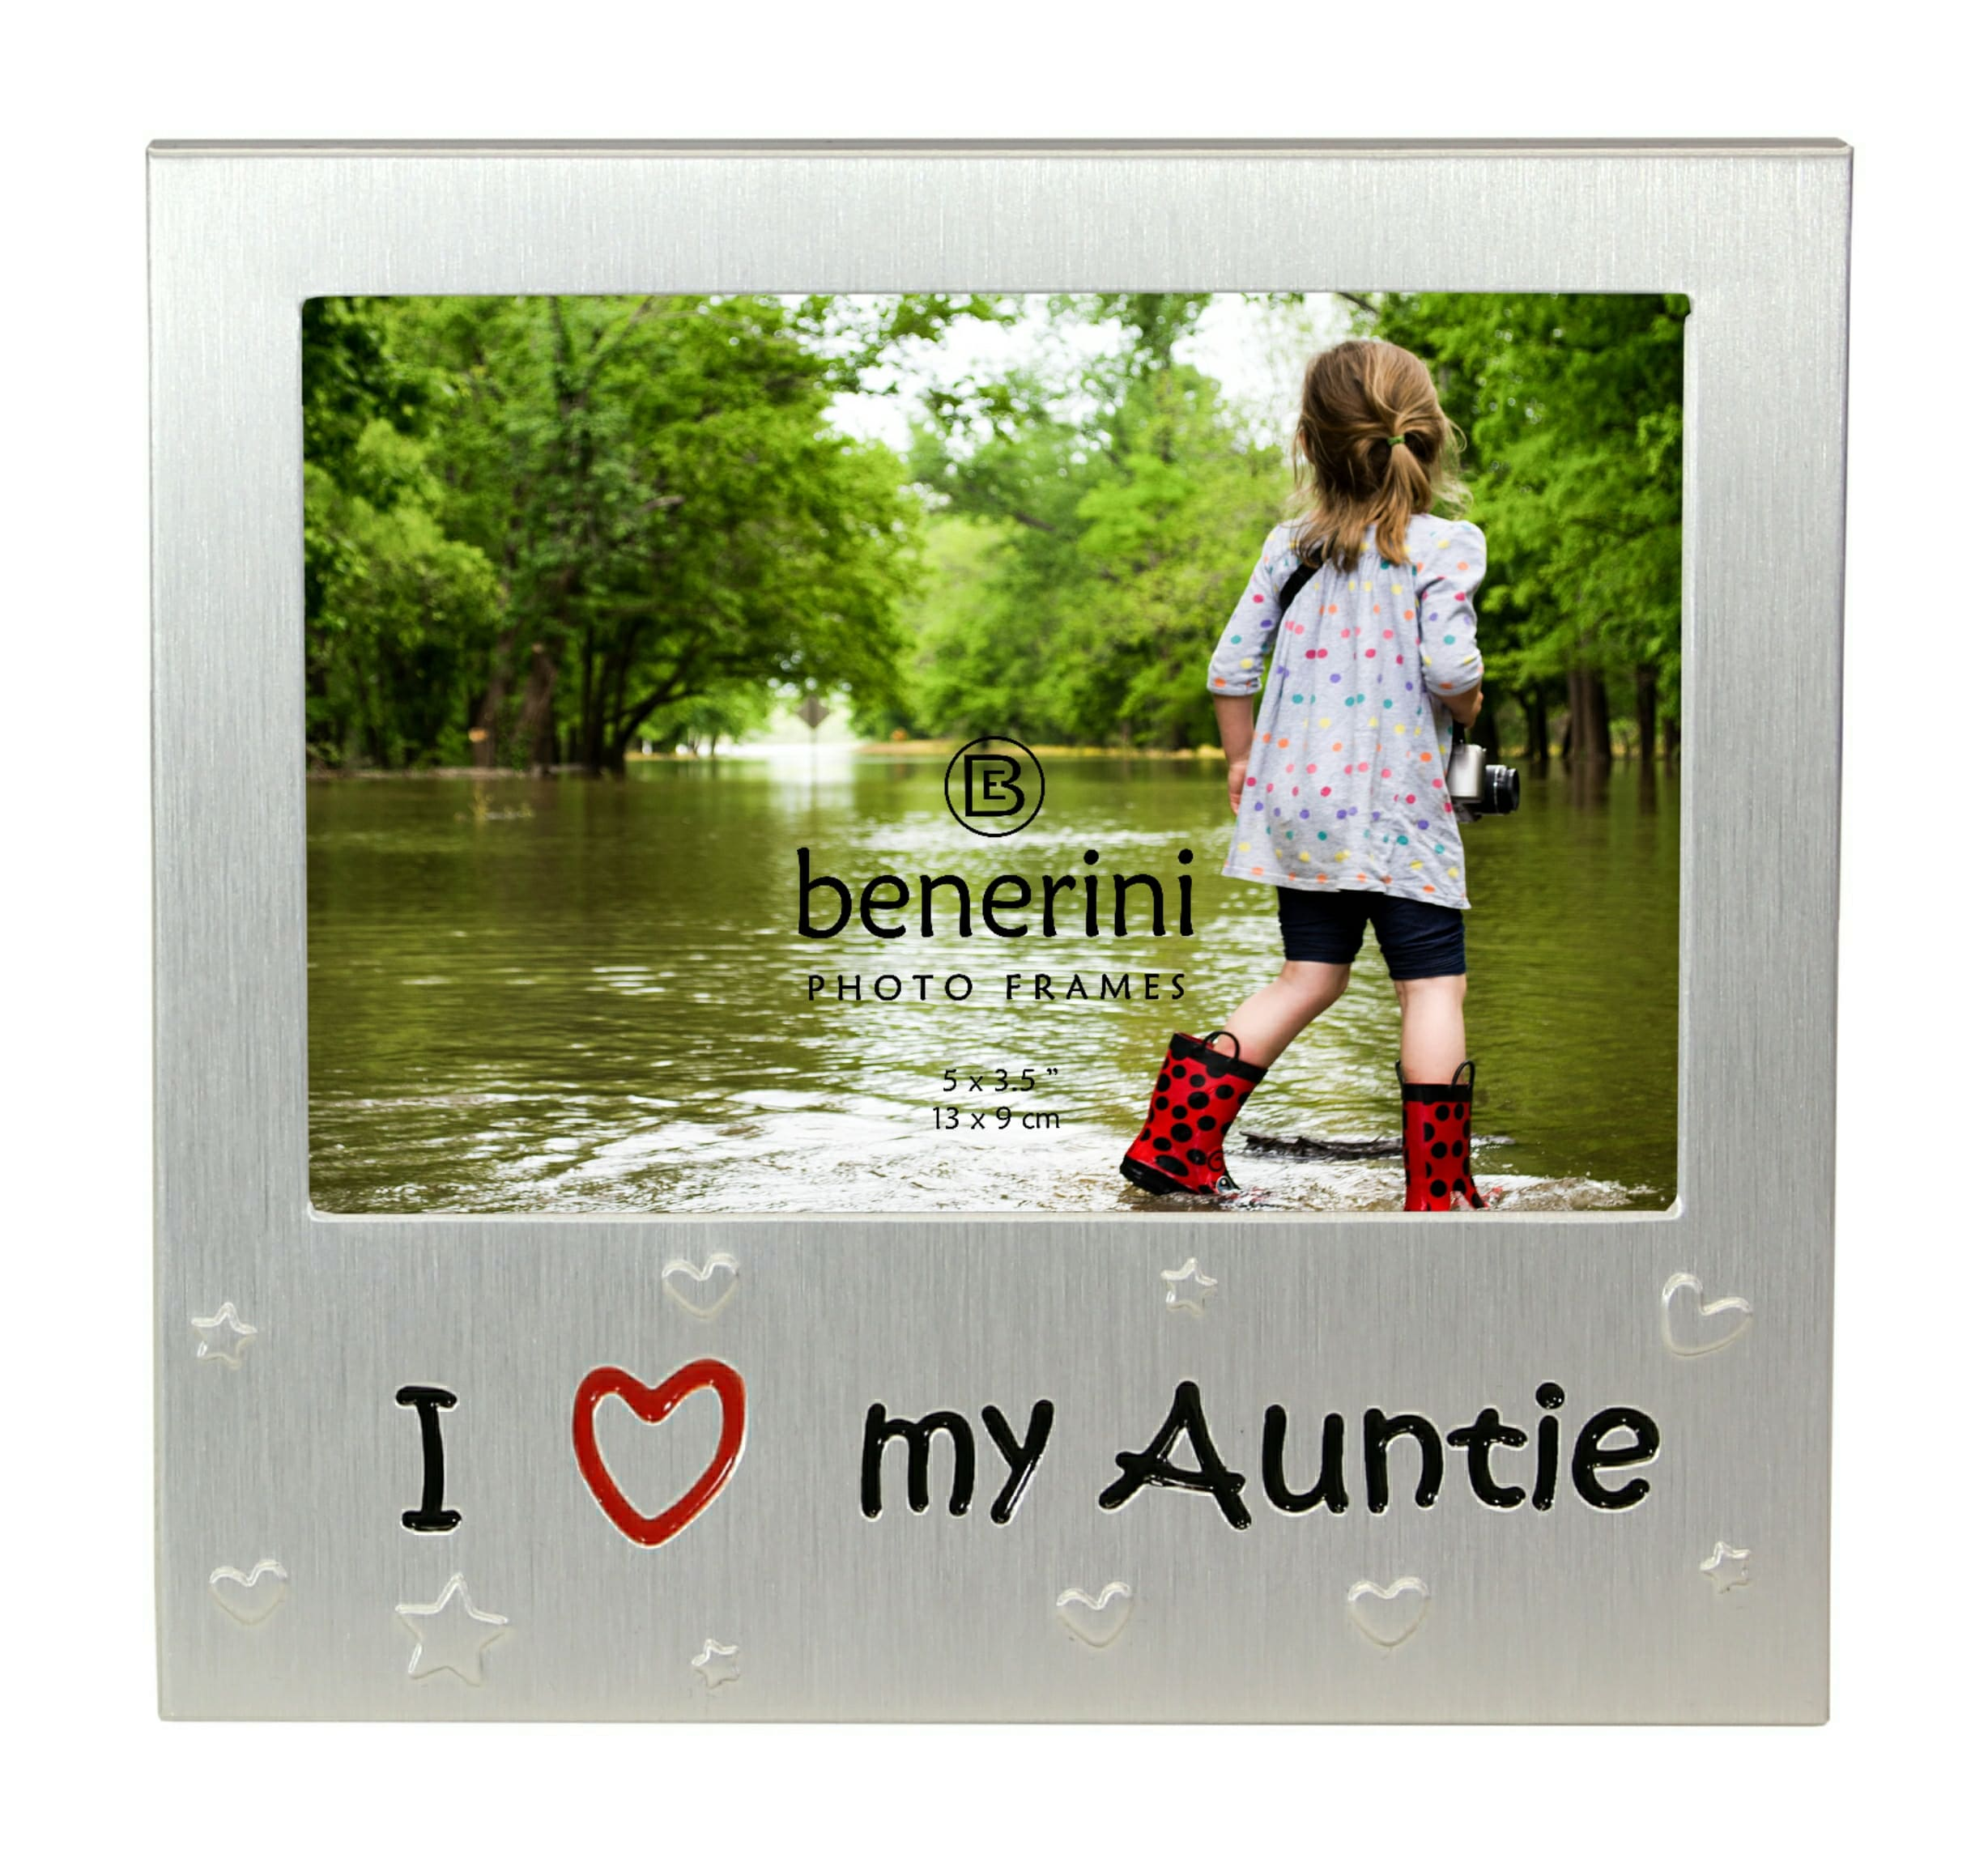 Details About I Love My Auntie Photo Picture Frame Birthday Christmas Gift Idea For Auntie